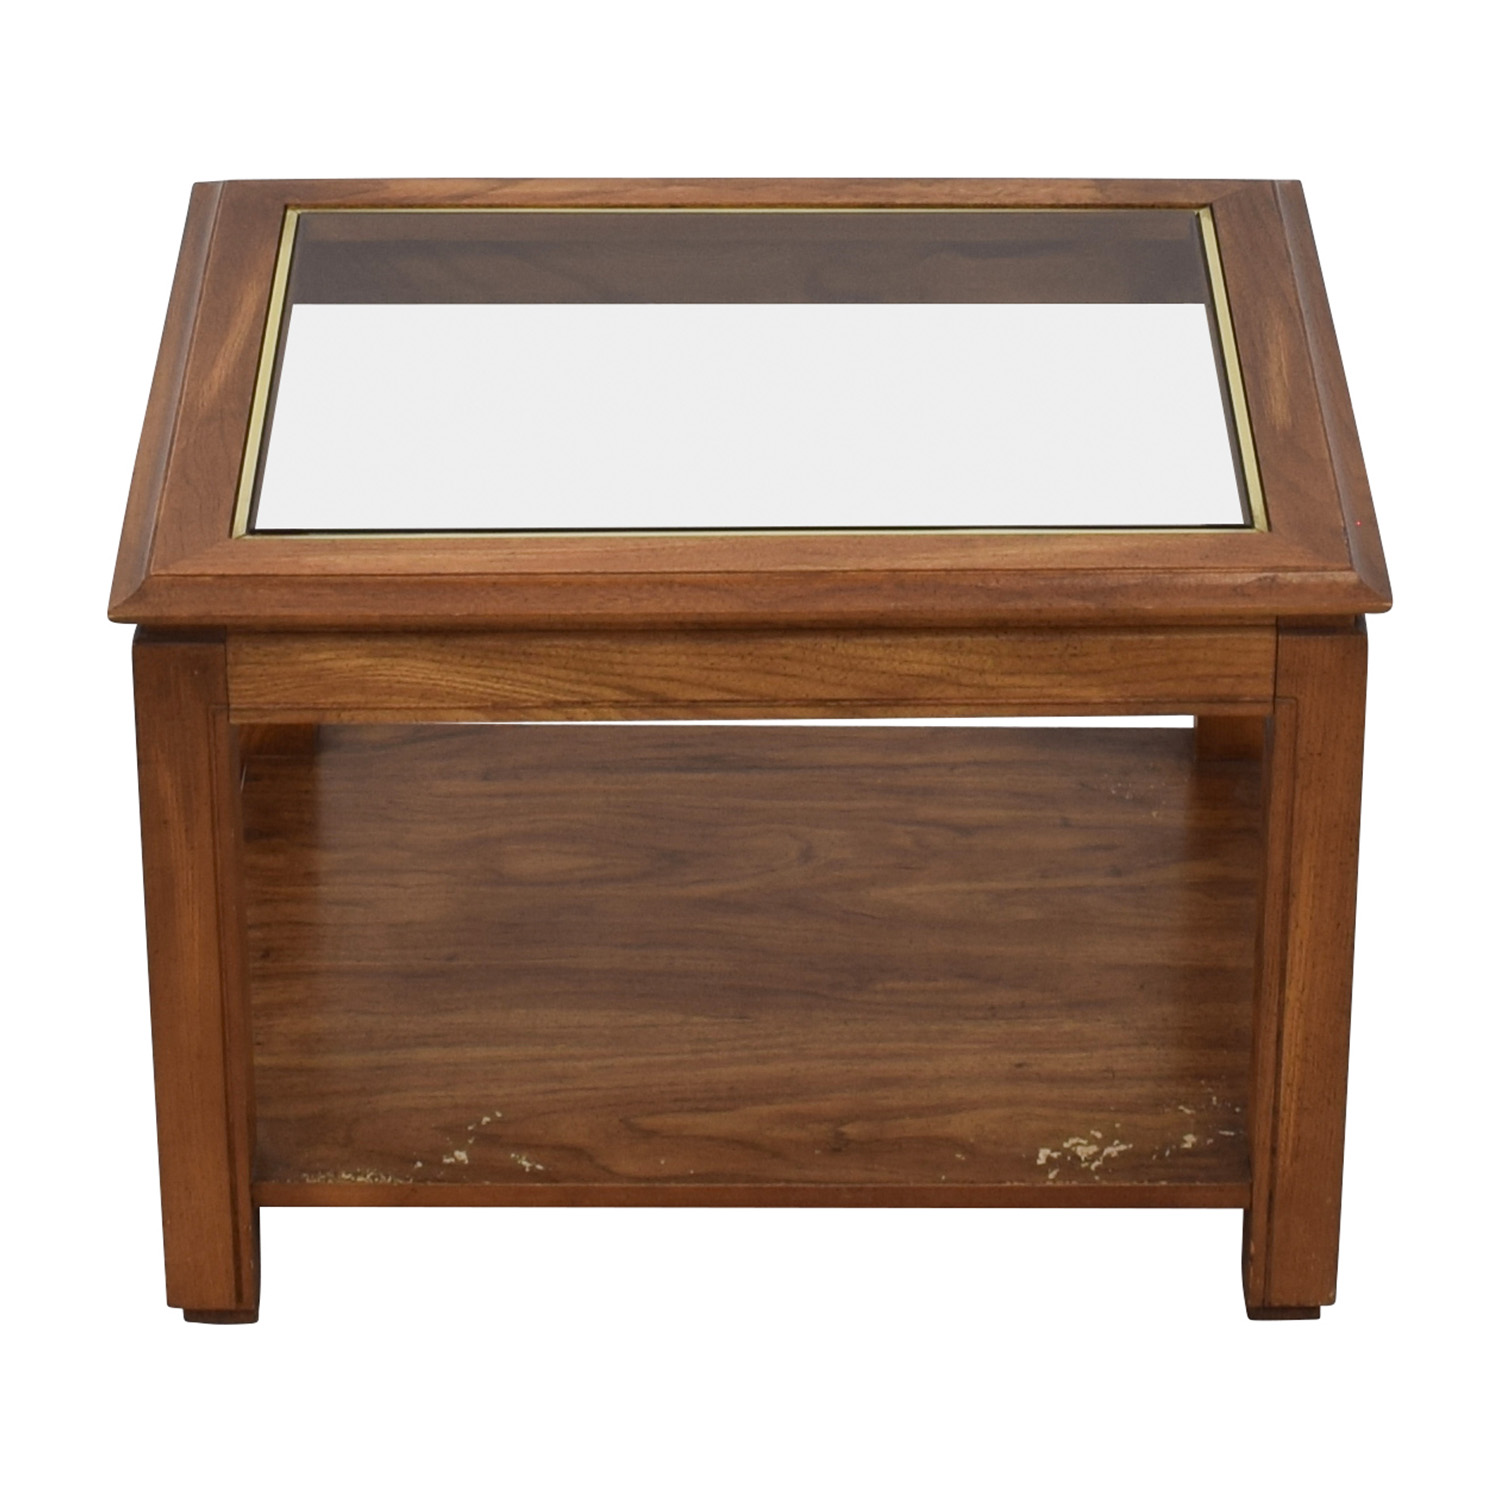 Walnut and Glass Rectangular Coffee Table price